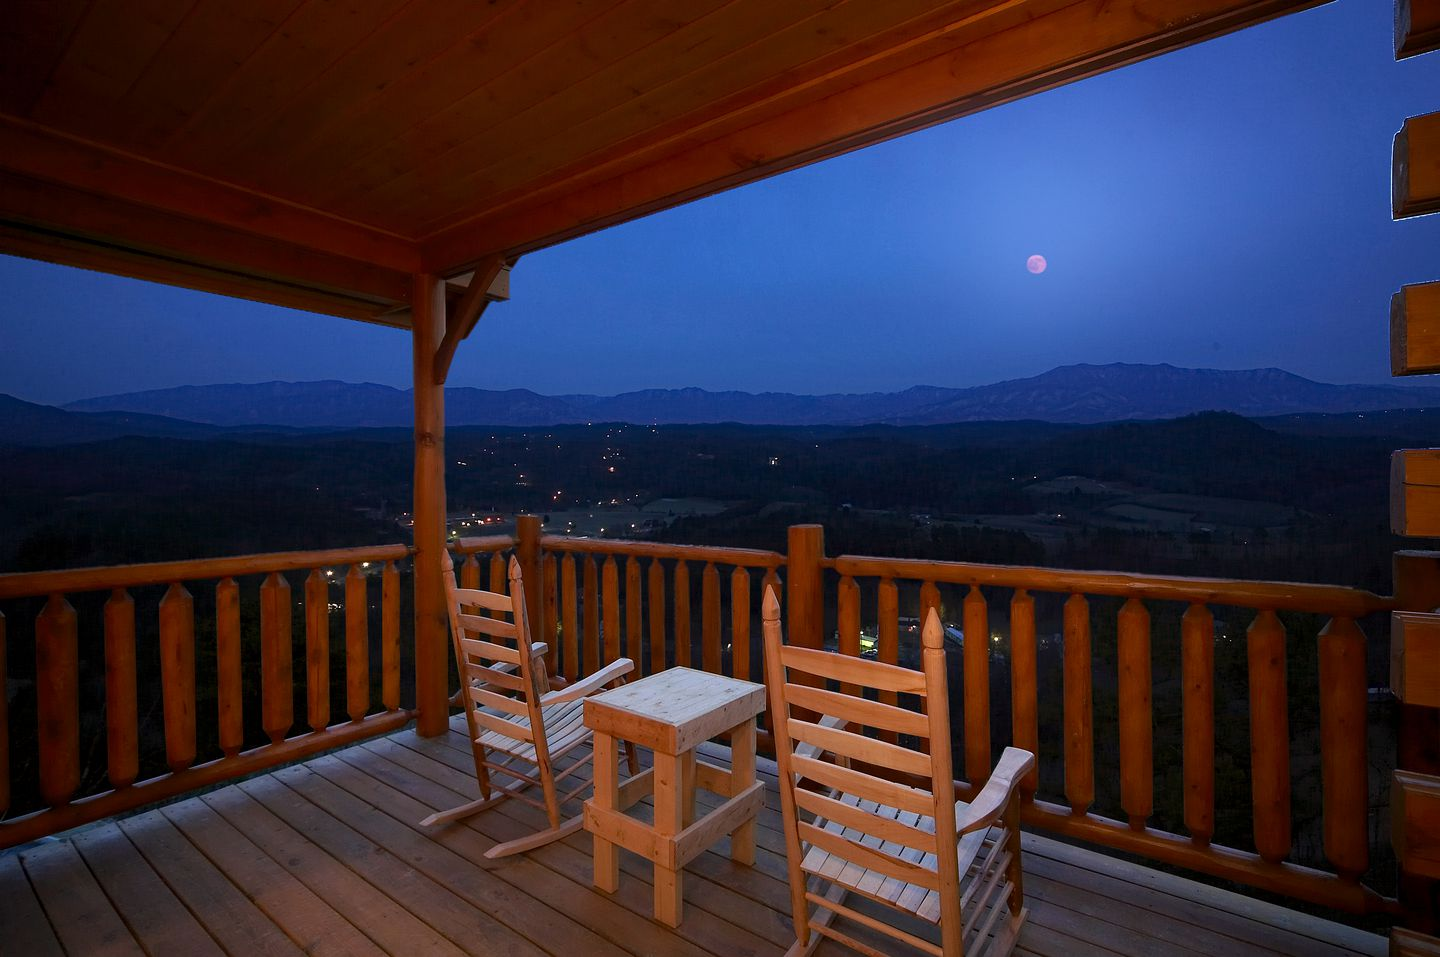 This Pigeon Forge cabin comes with a hot tub and epic mountain views making it ideal for a getaway in Tennessee